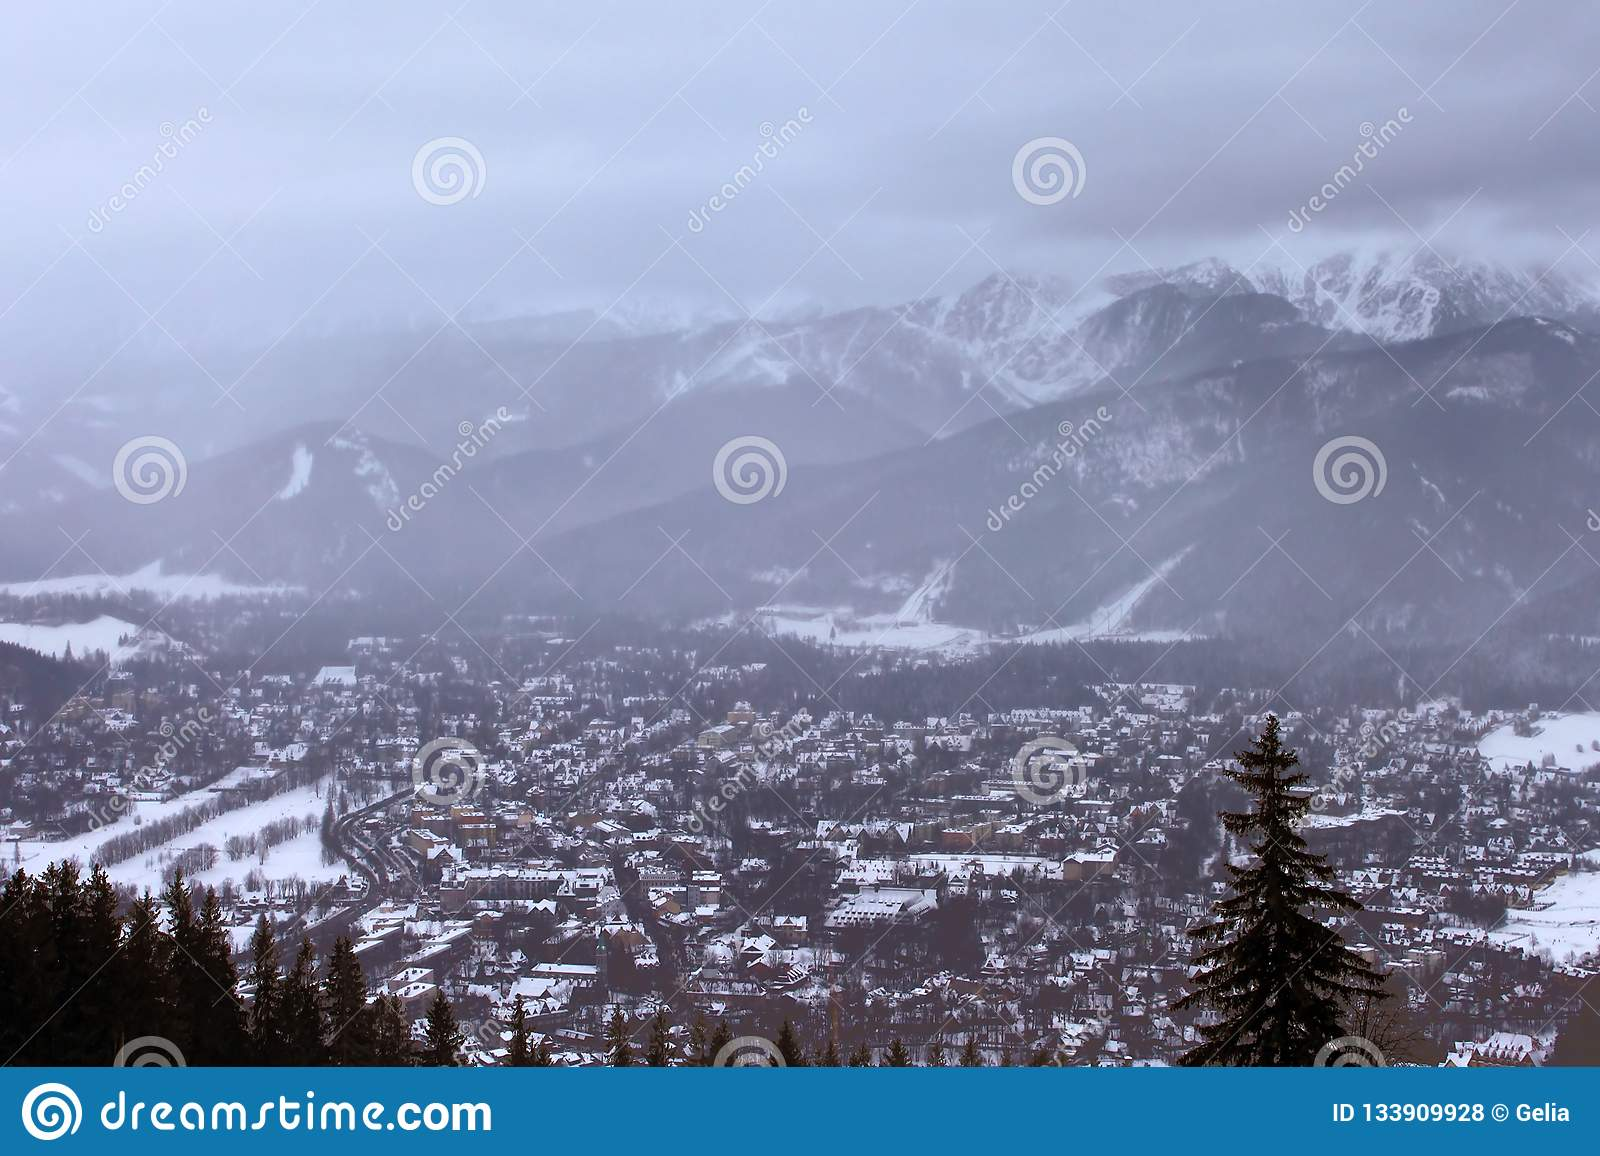 View of Zakopane and Tatra Mountains from Gubalowka in the winter in snowing weather